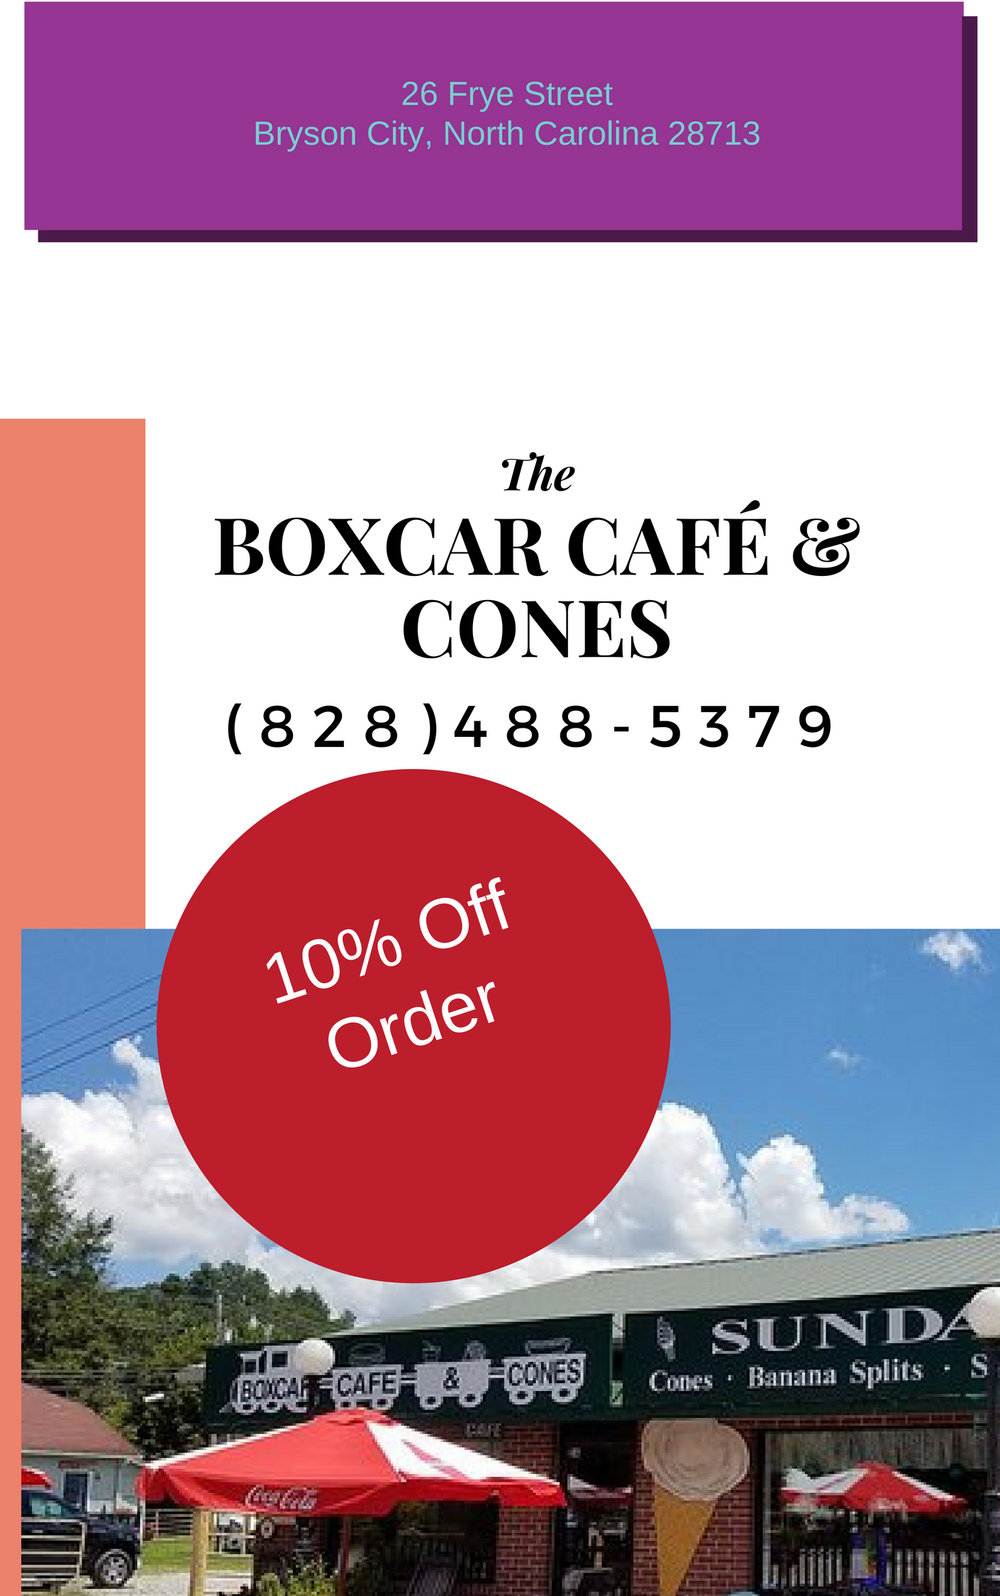 box car cafe.jpg